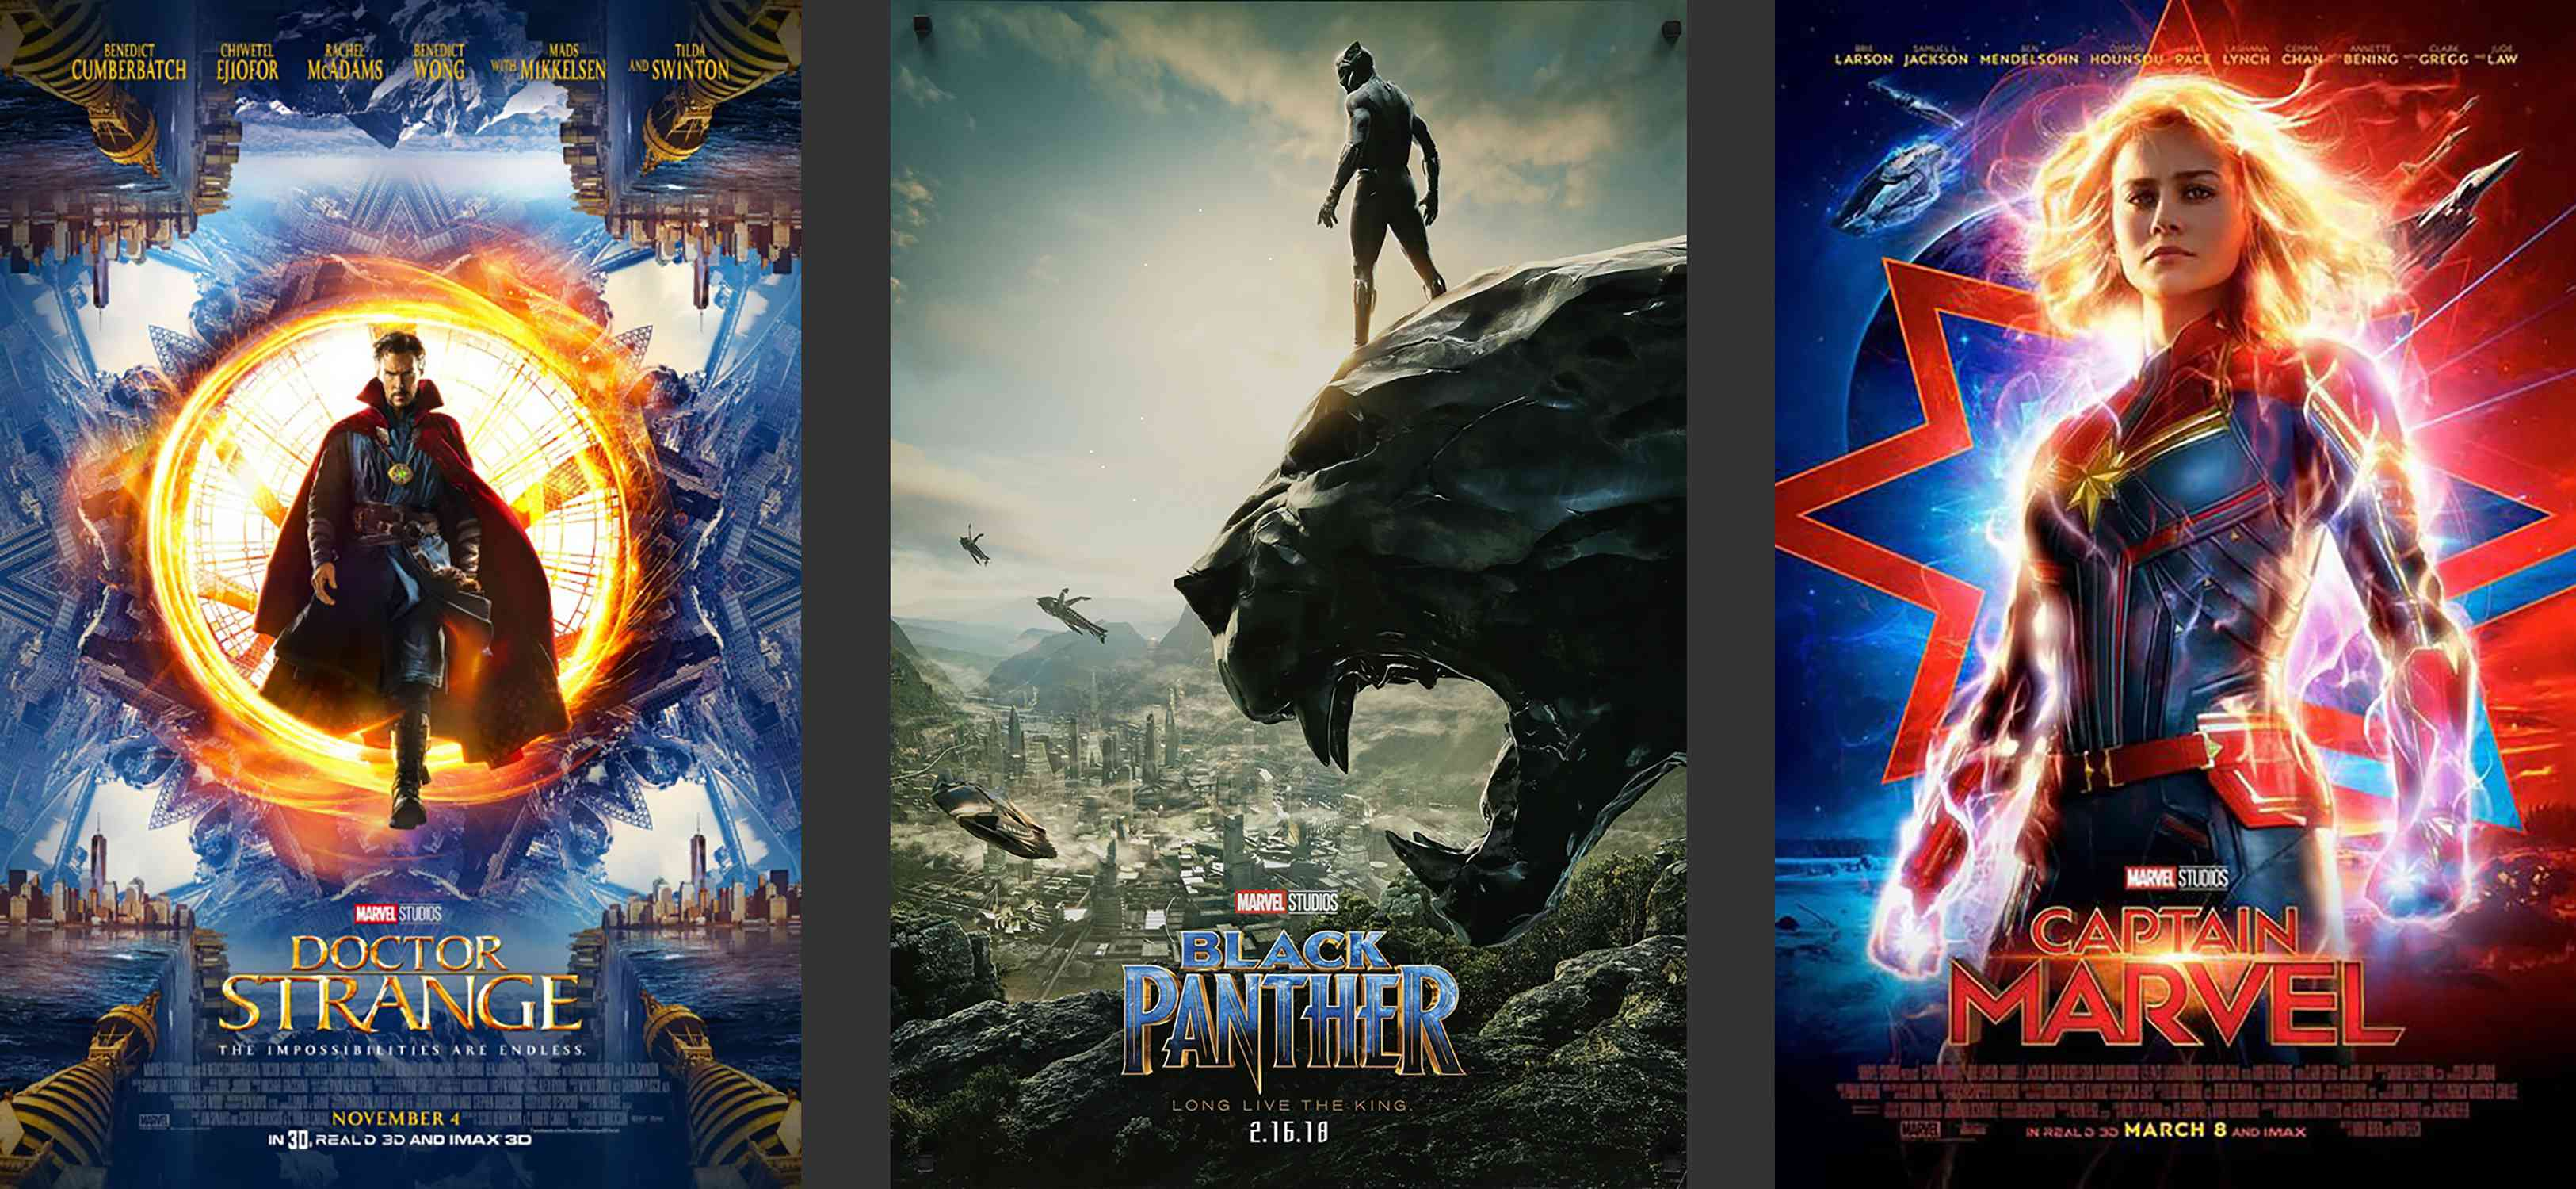 Marvel Movies Phase 3 Posters